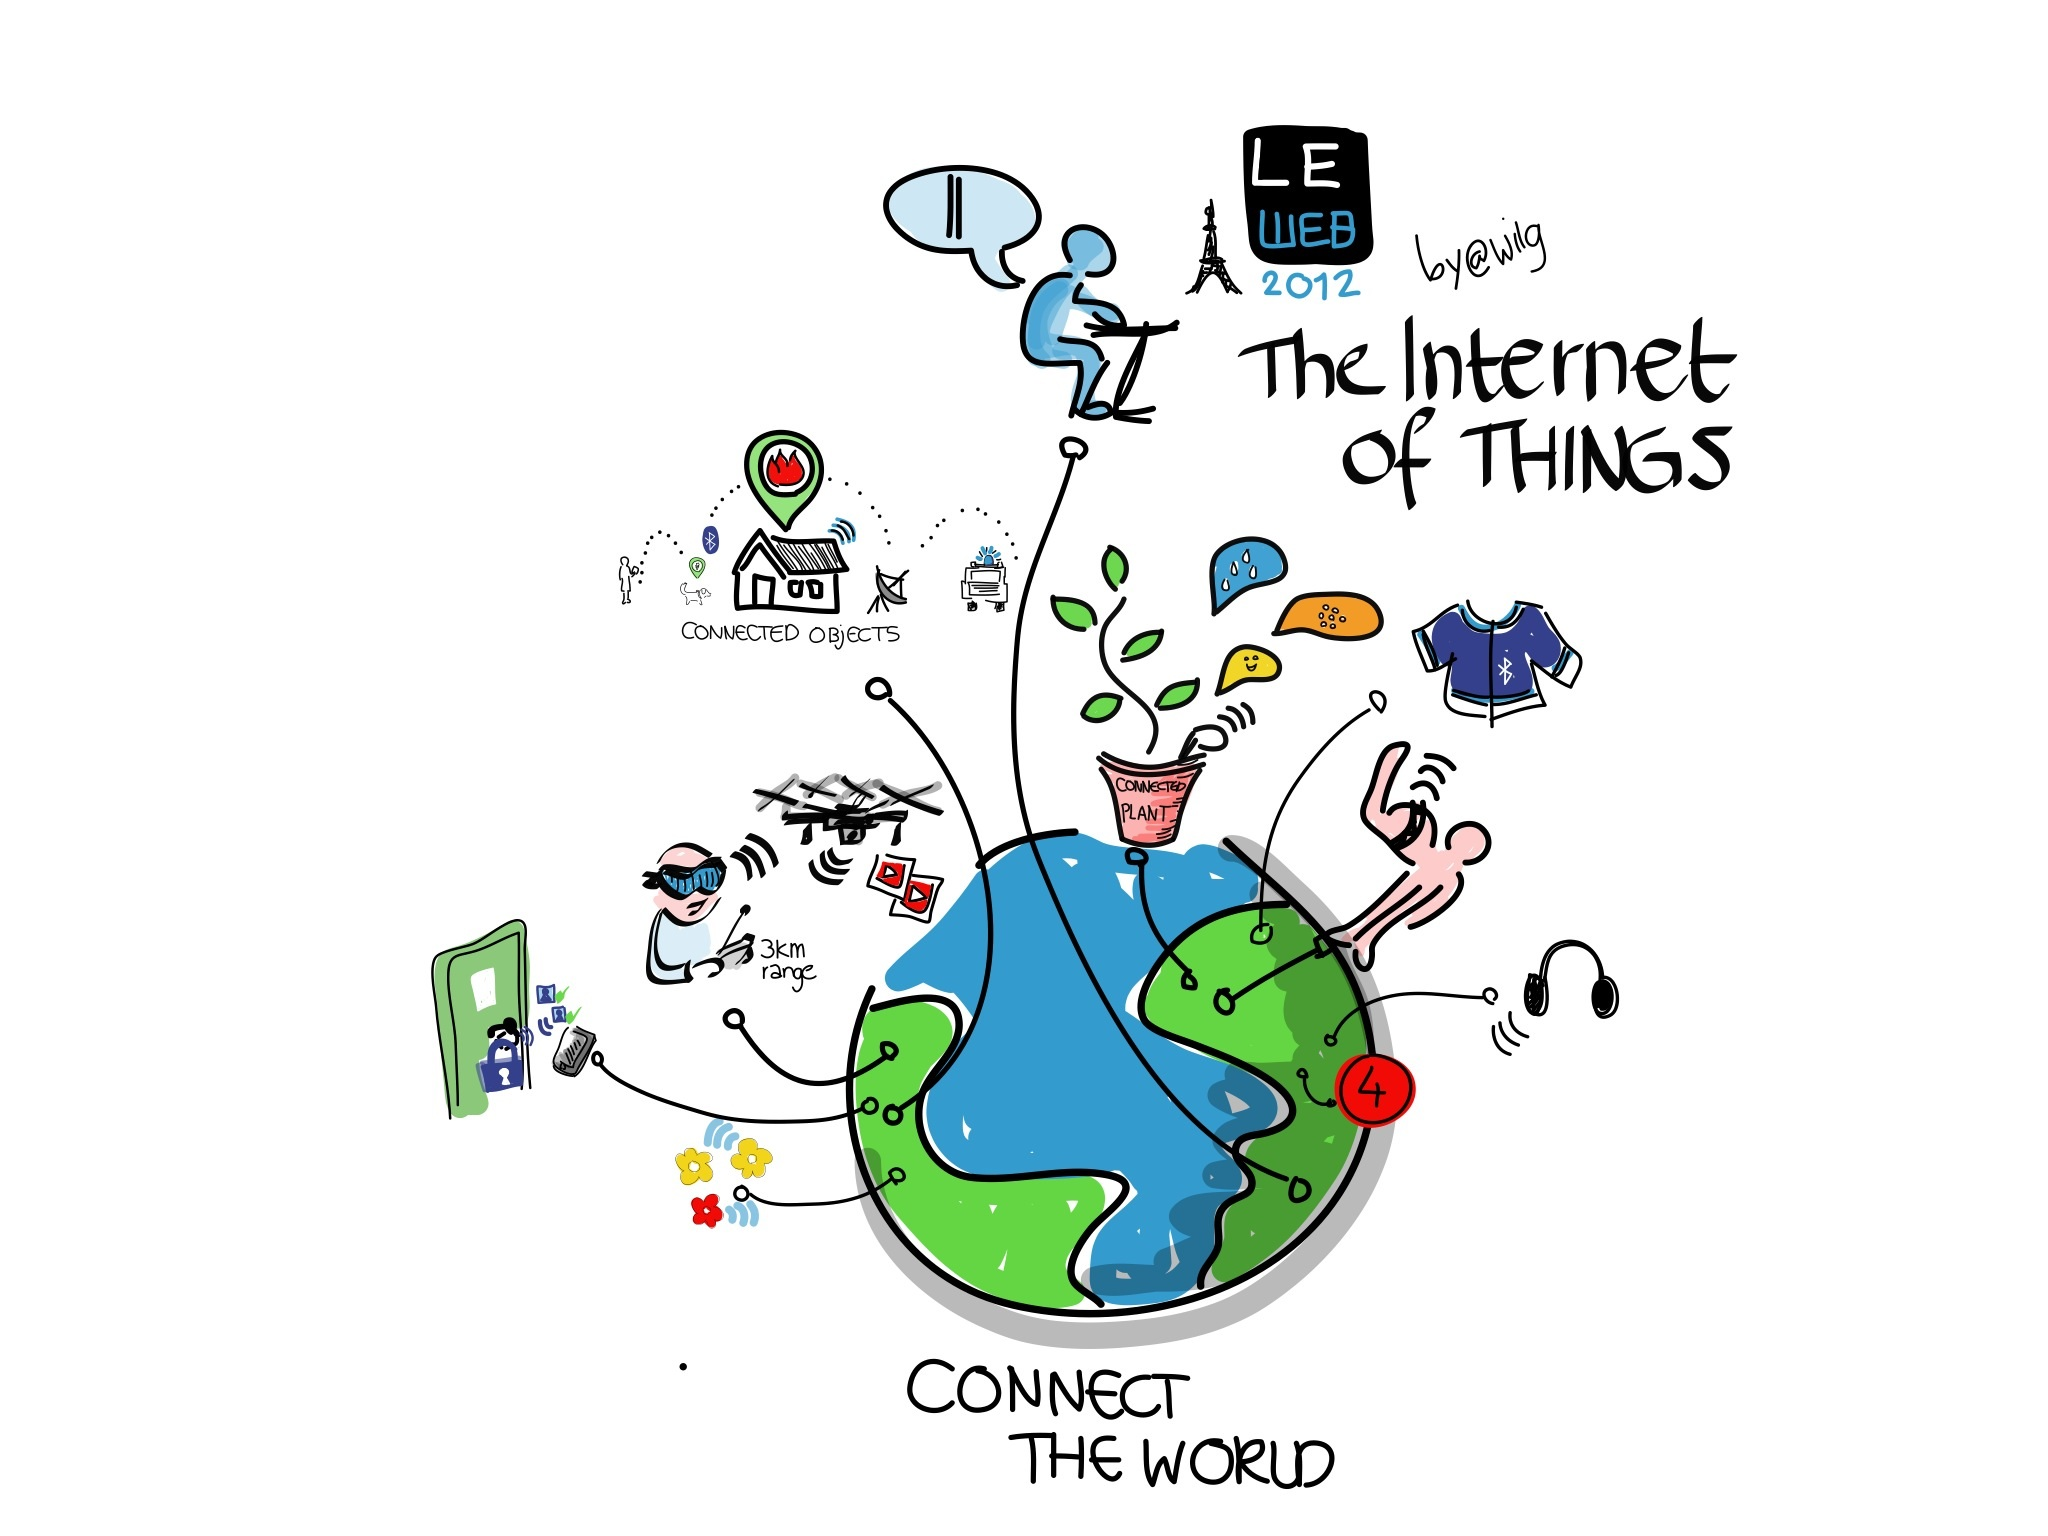 The Internet of Things: Why Now and What's Next